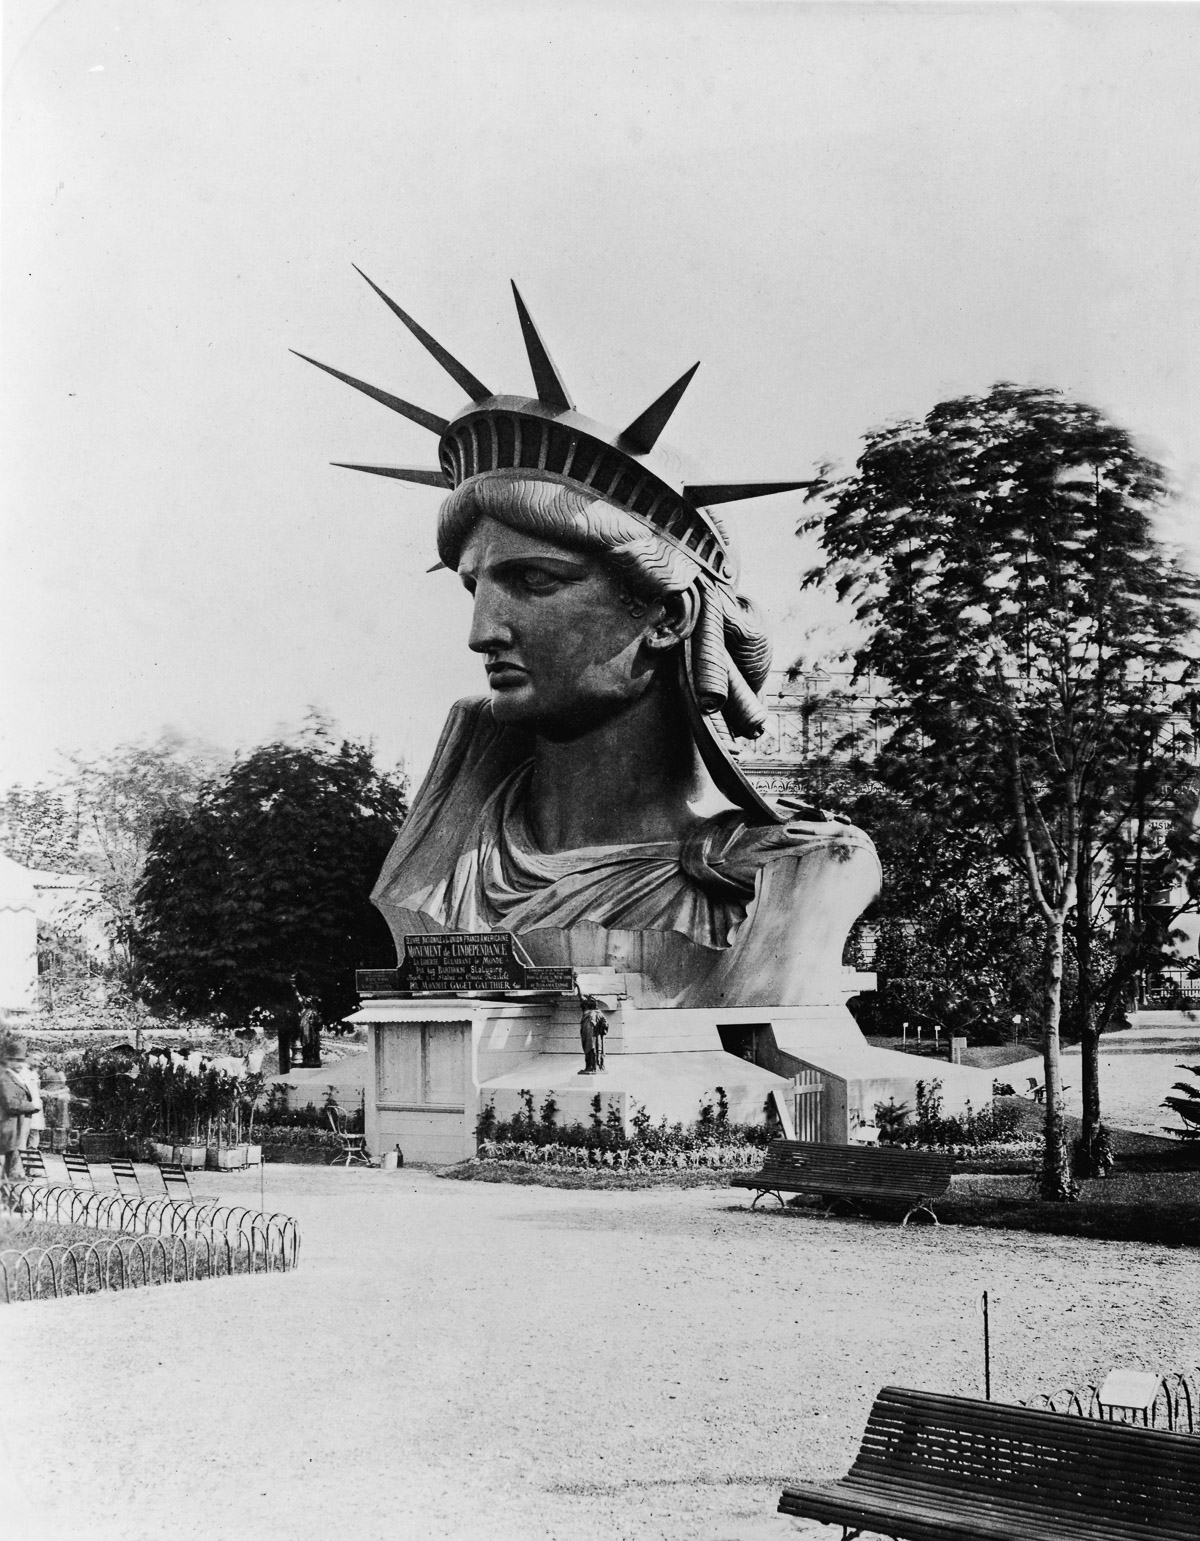 Statue Of Liberty's Head